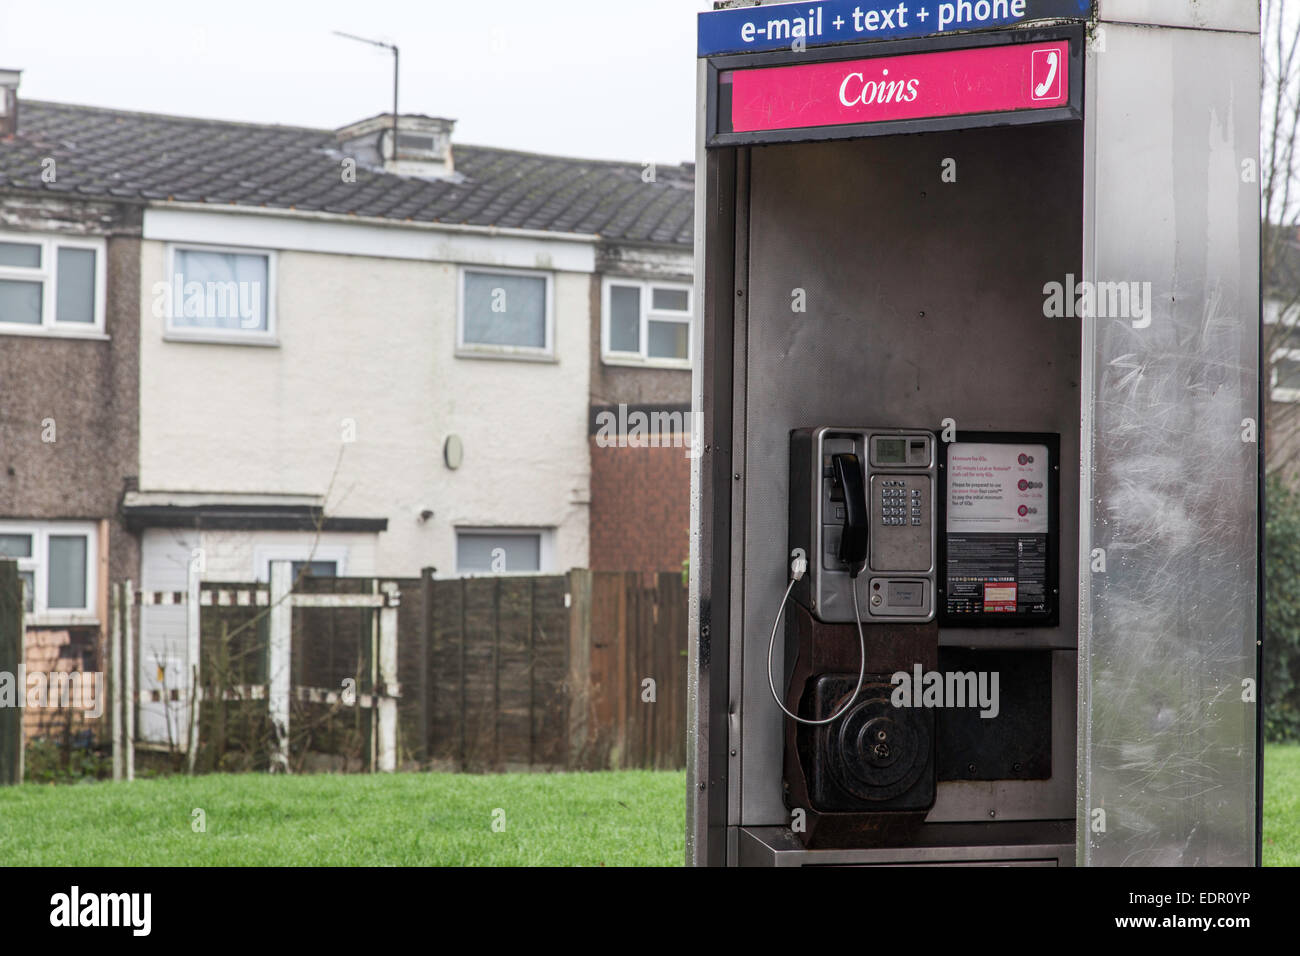 KX100 BT telephone kiosk outside a housing estate, England, UK - Stock Image